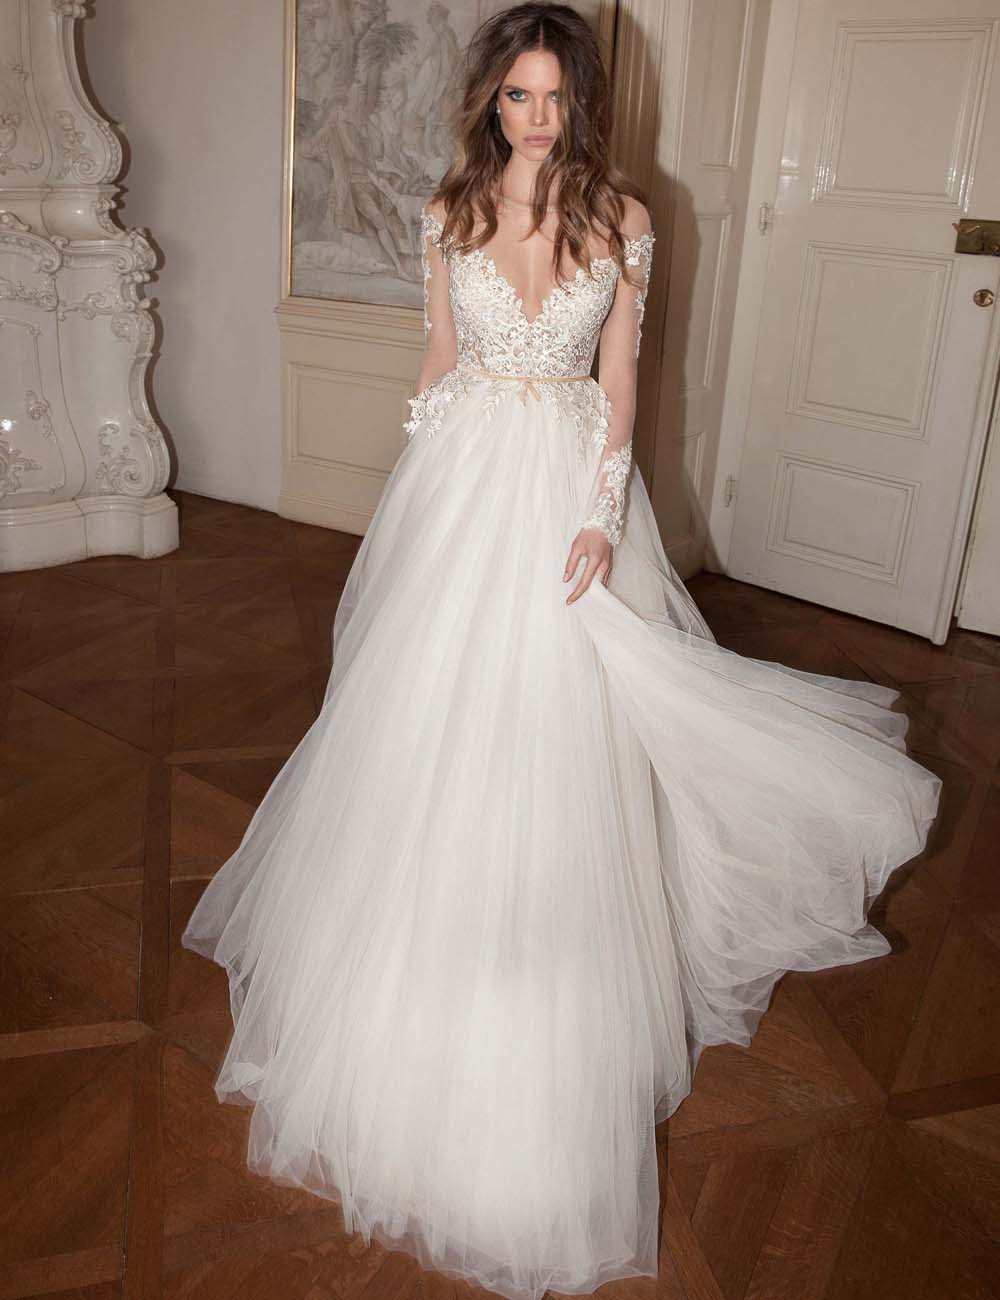 2018 Sexy Fall Backless bridal gown with Long Sleeves Appliques Tulle Floor Length Vestido de Novia mother of the bride dresses